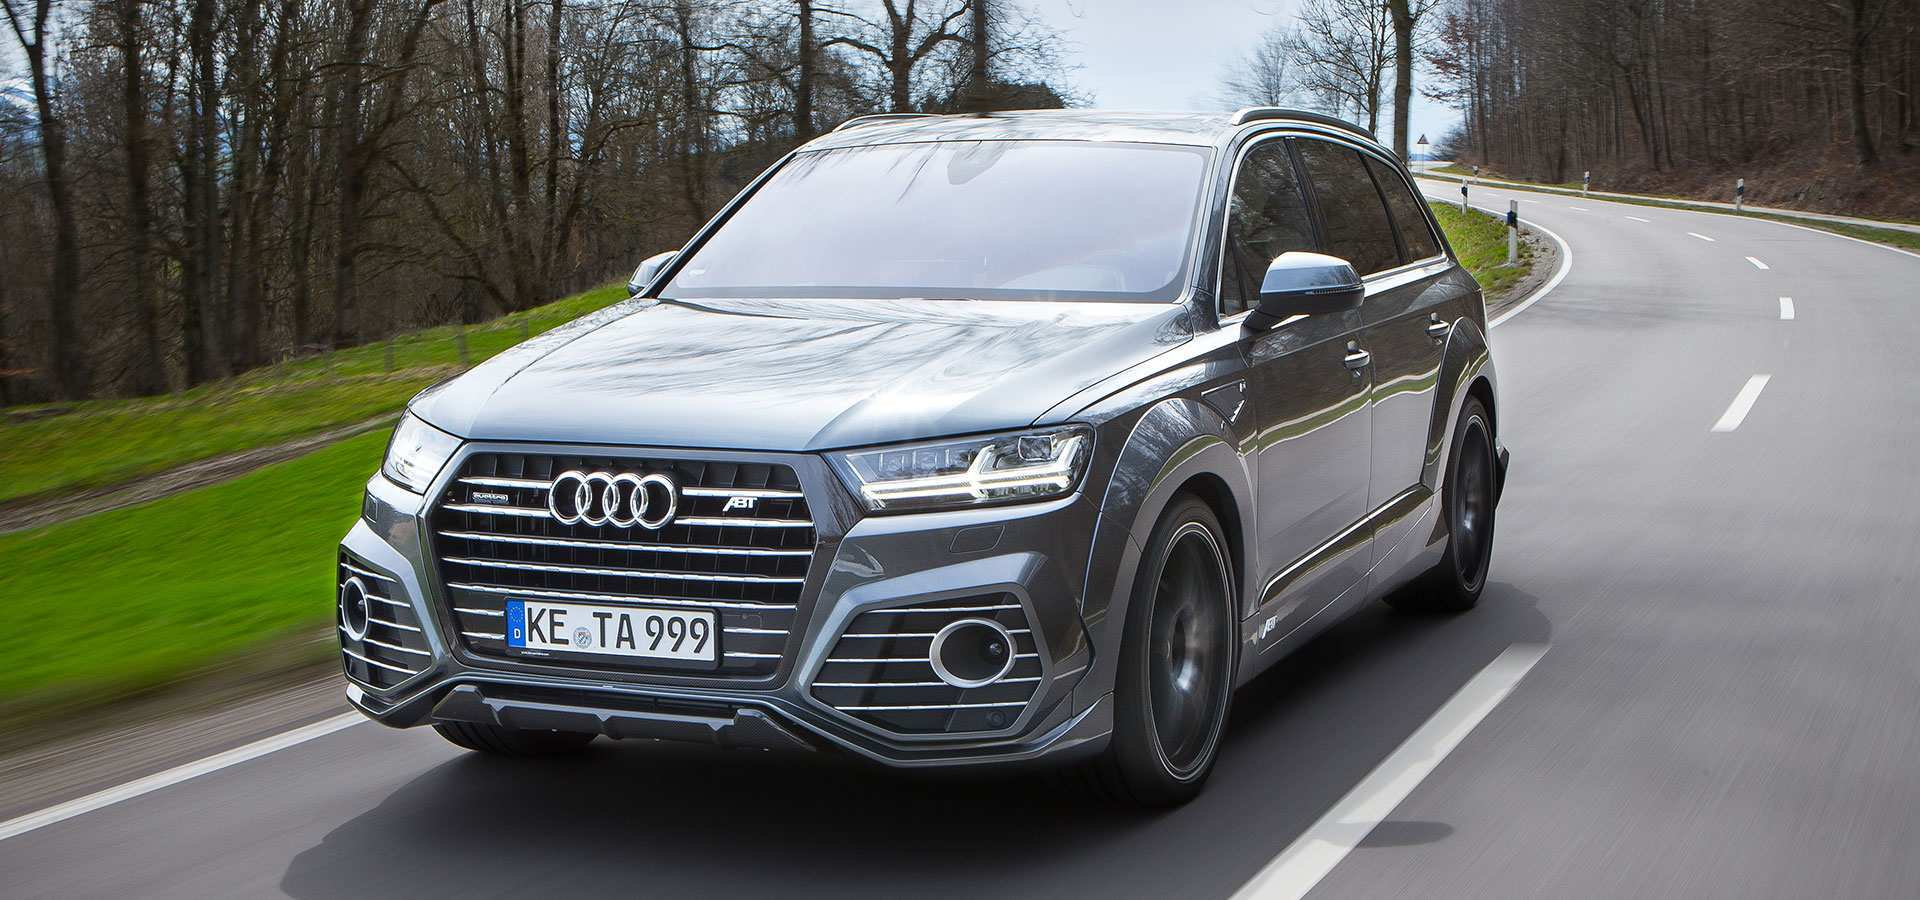 25 Gallery of New Audi Q7 2019 Youtube Spesification Specs and Review for New Audi Q7 2019 Youtube Spesification